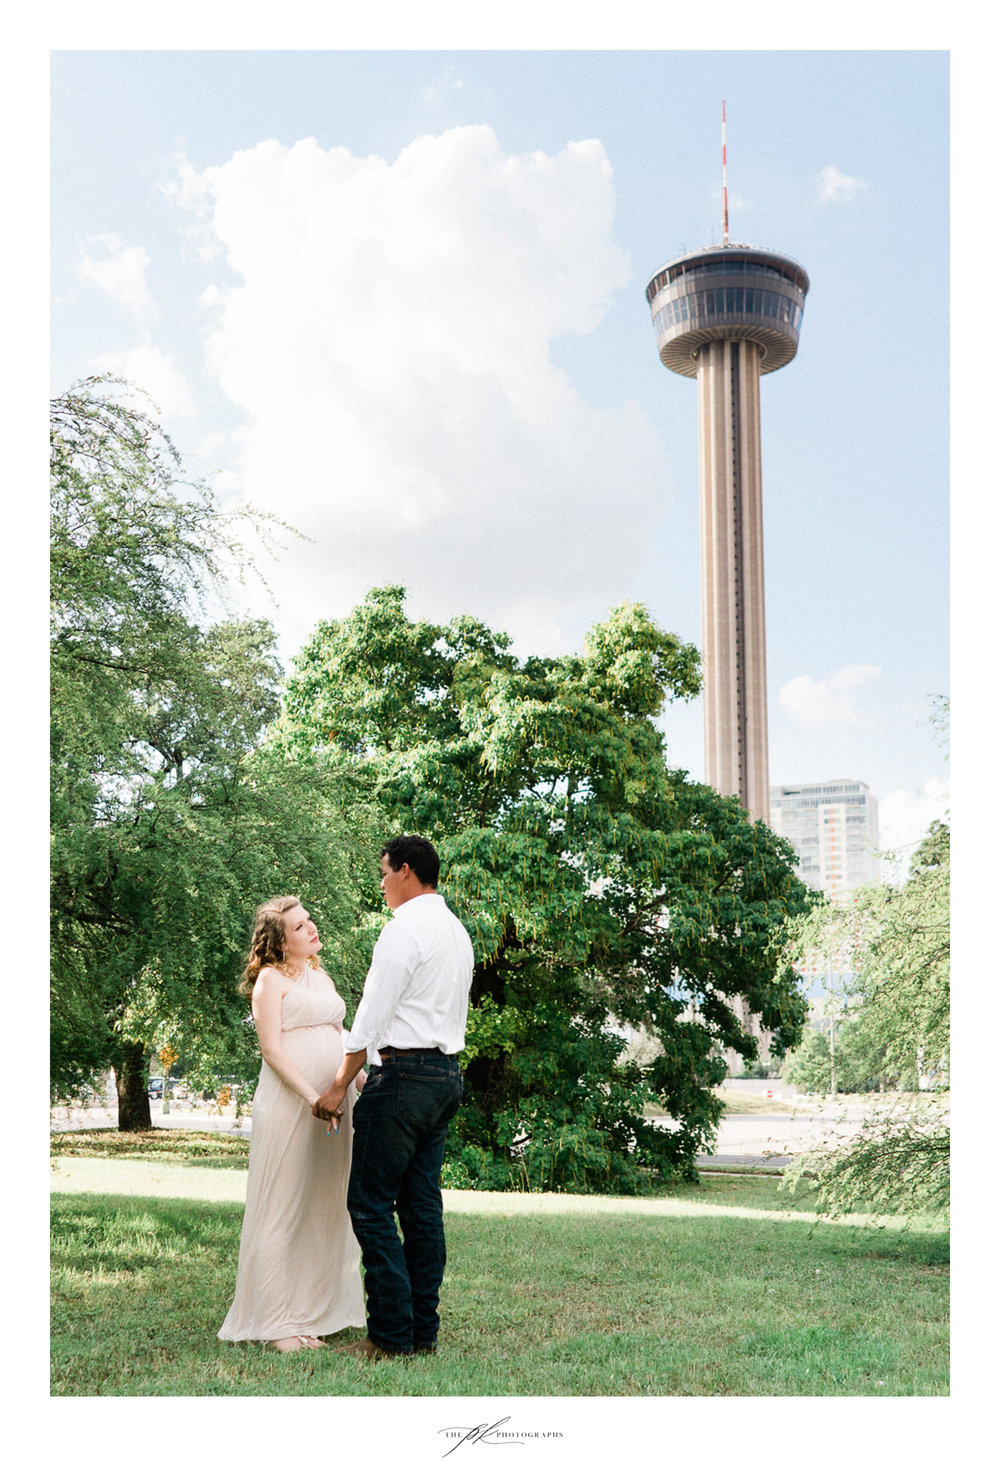 Maternity couple's portrait session downtown San Antonio, Texas. Photography by Parker Radbourne of The PK Photographs